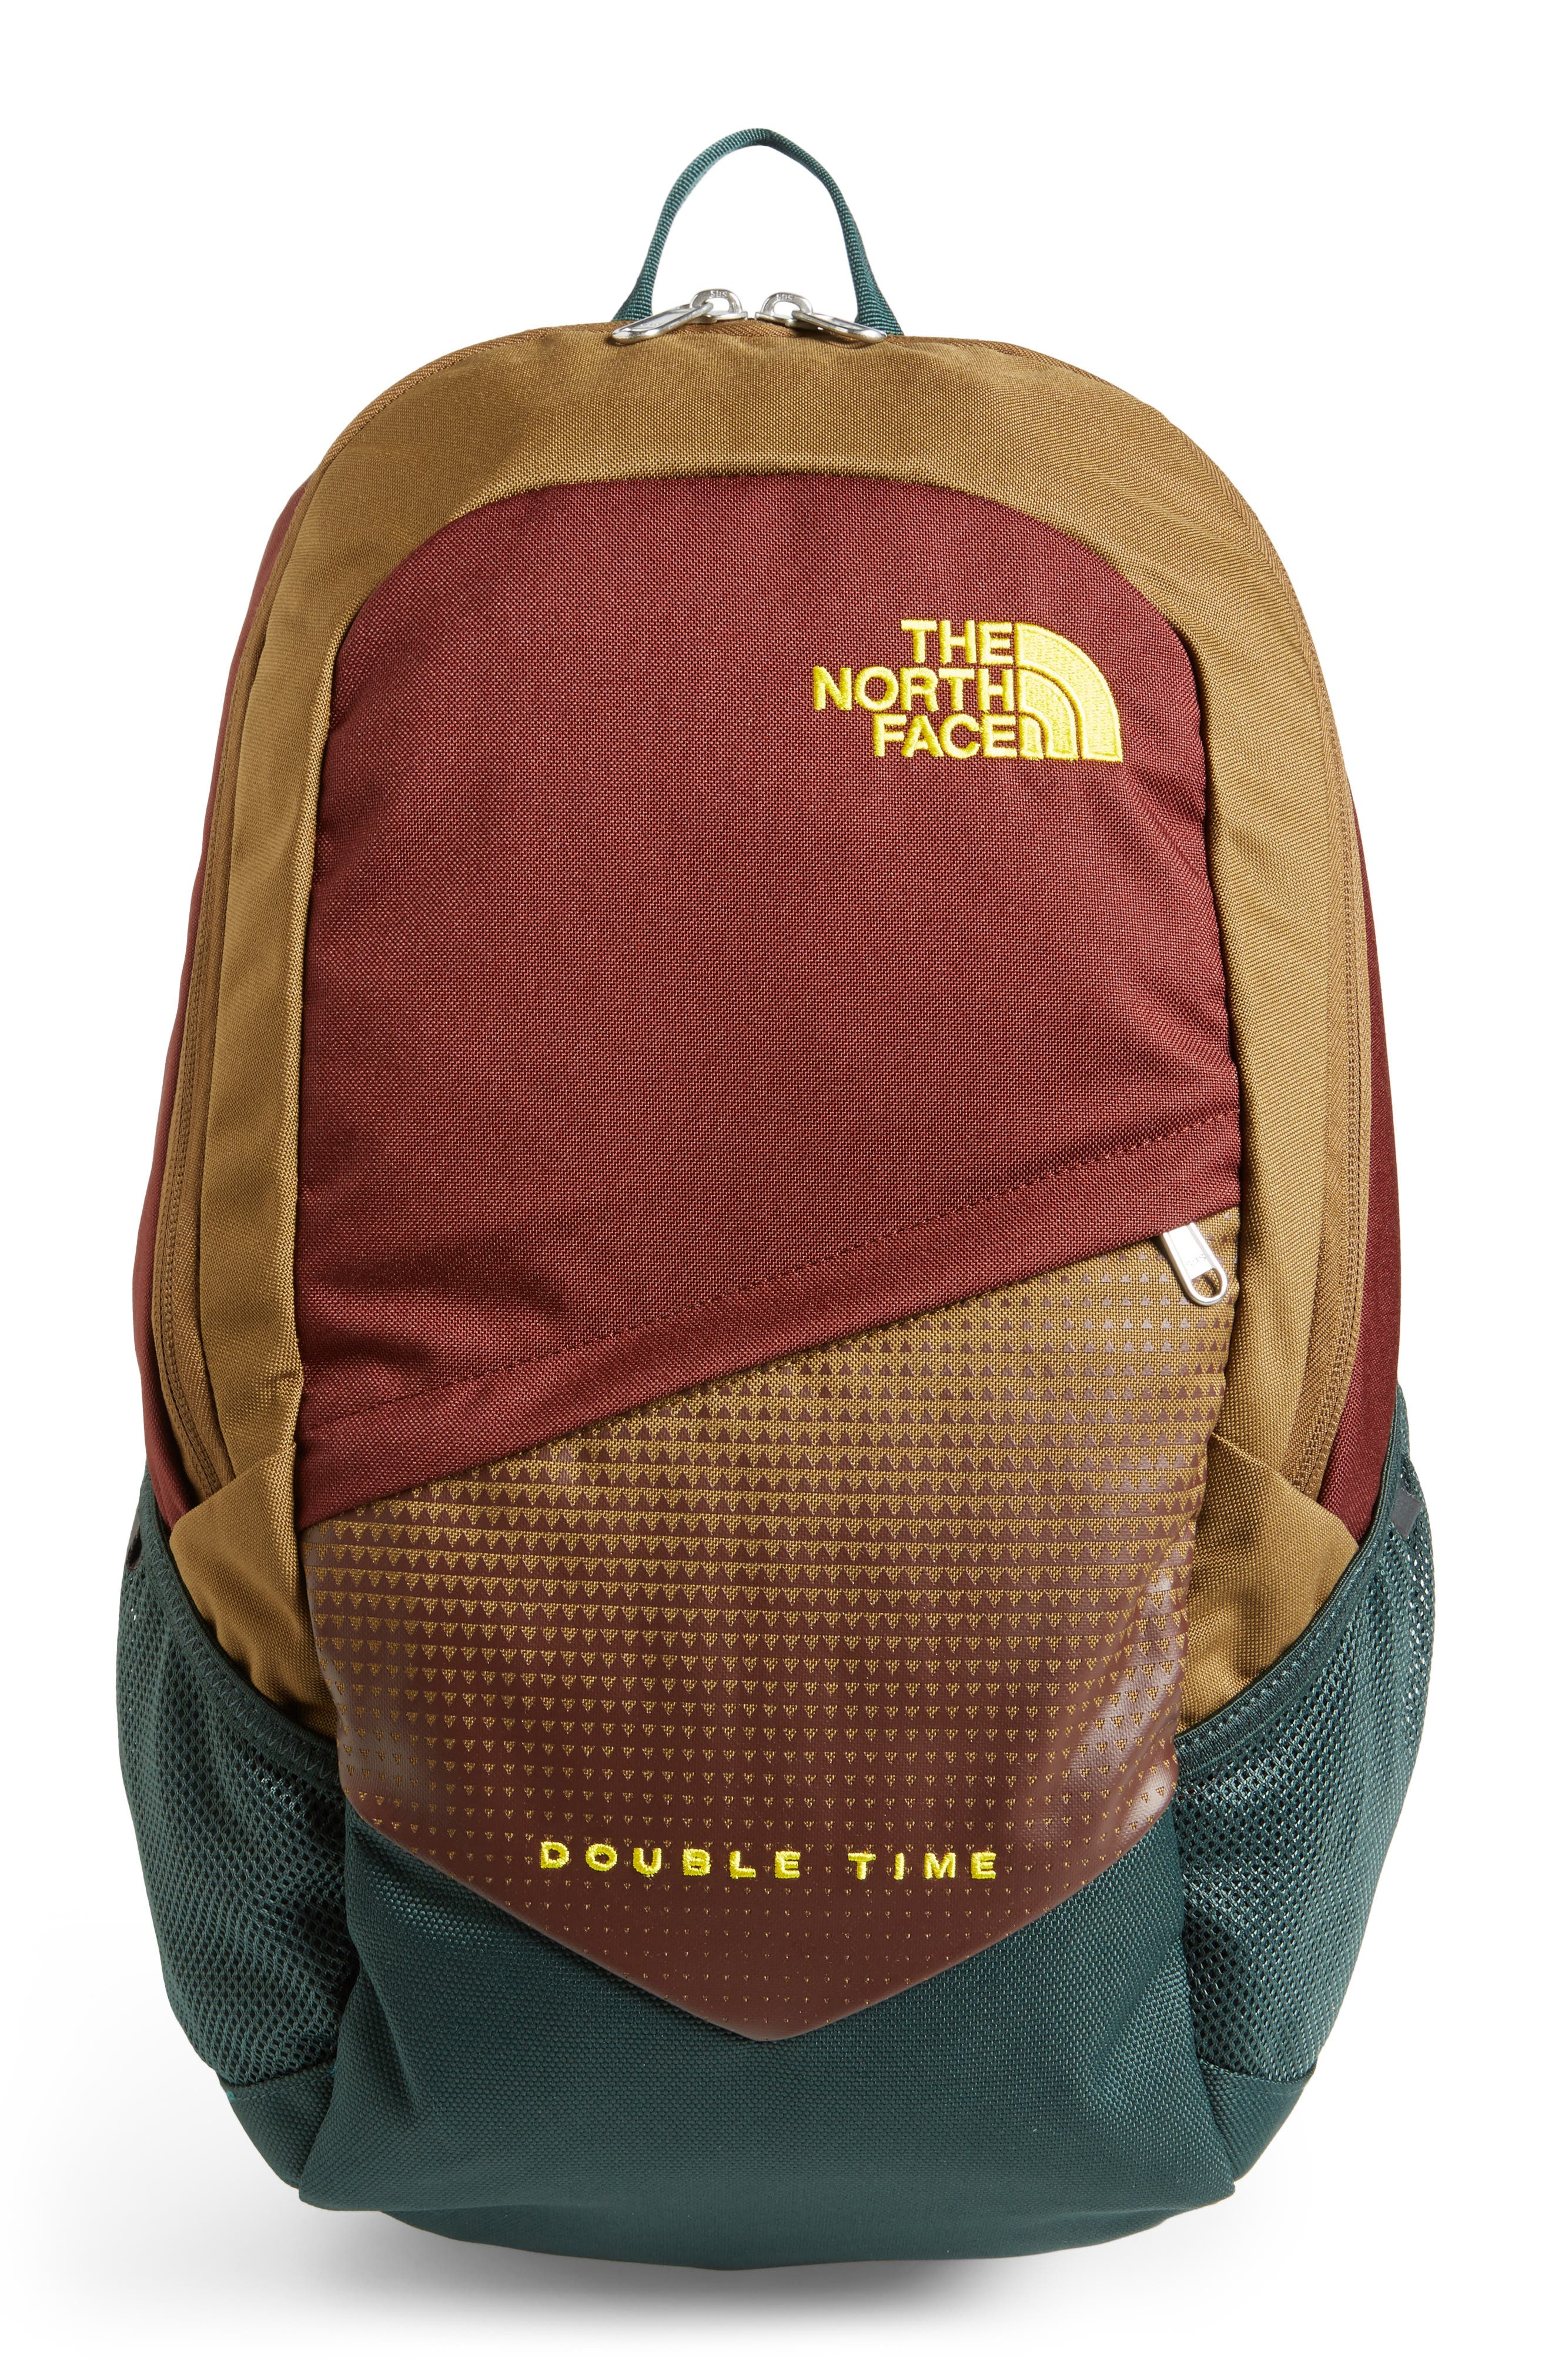 Double Time Backpack,                             Main thumbnail 1, color,                             301